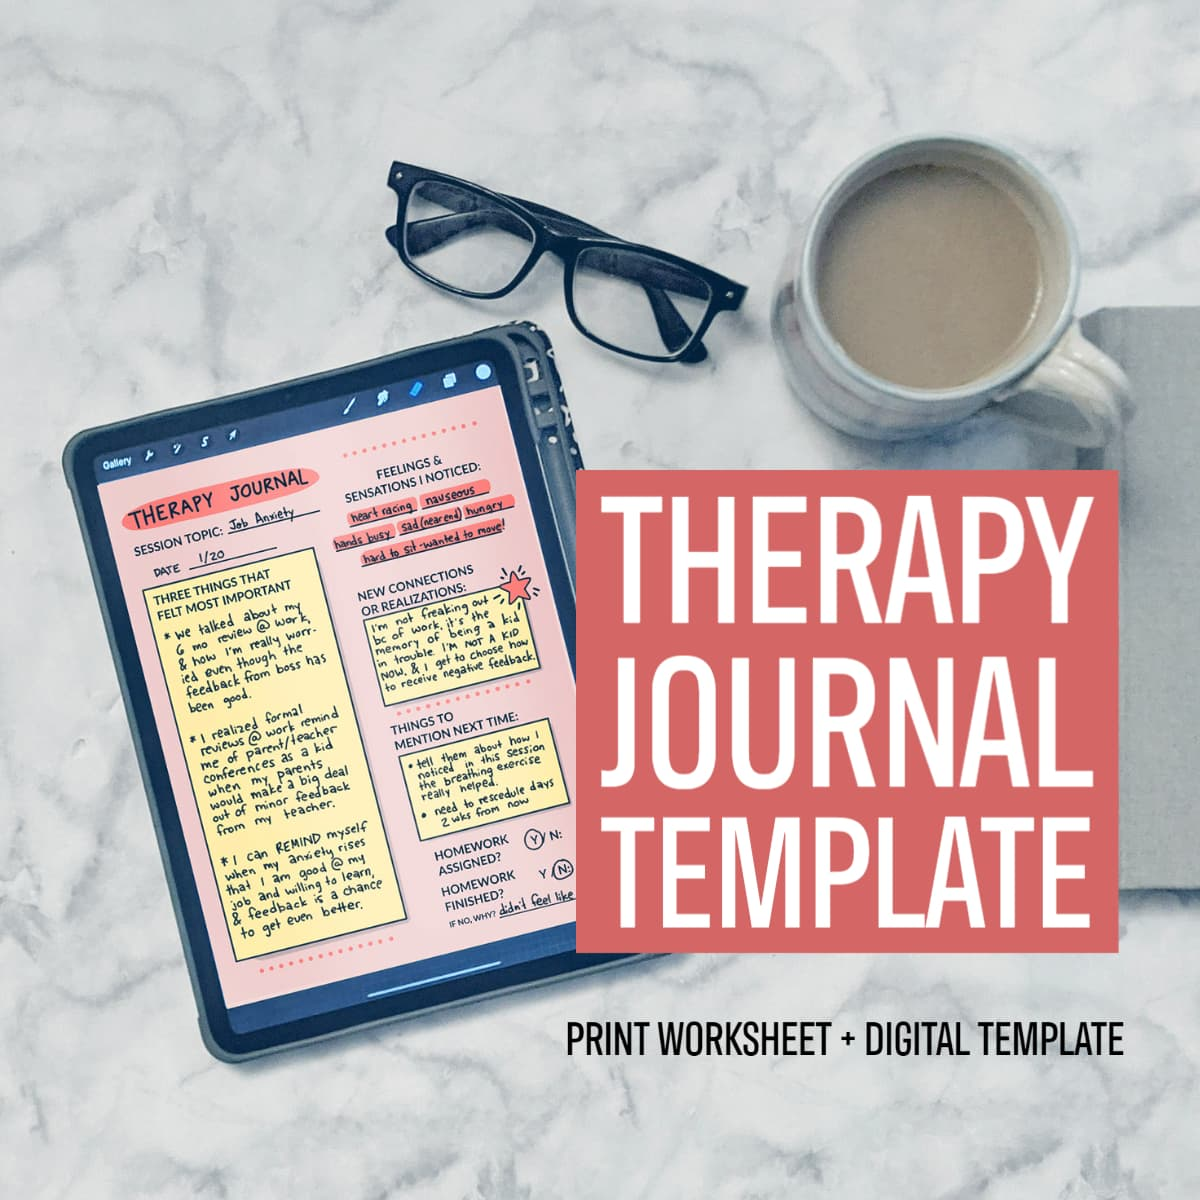 Journaling can help make therapy appointments more effective. Download this therapy journal template for post-therapy processing